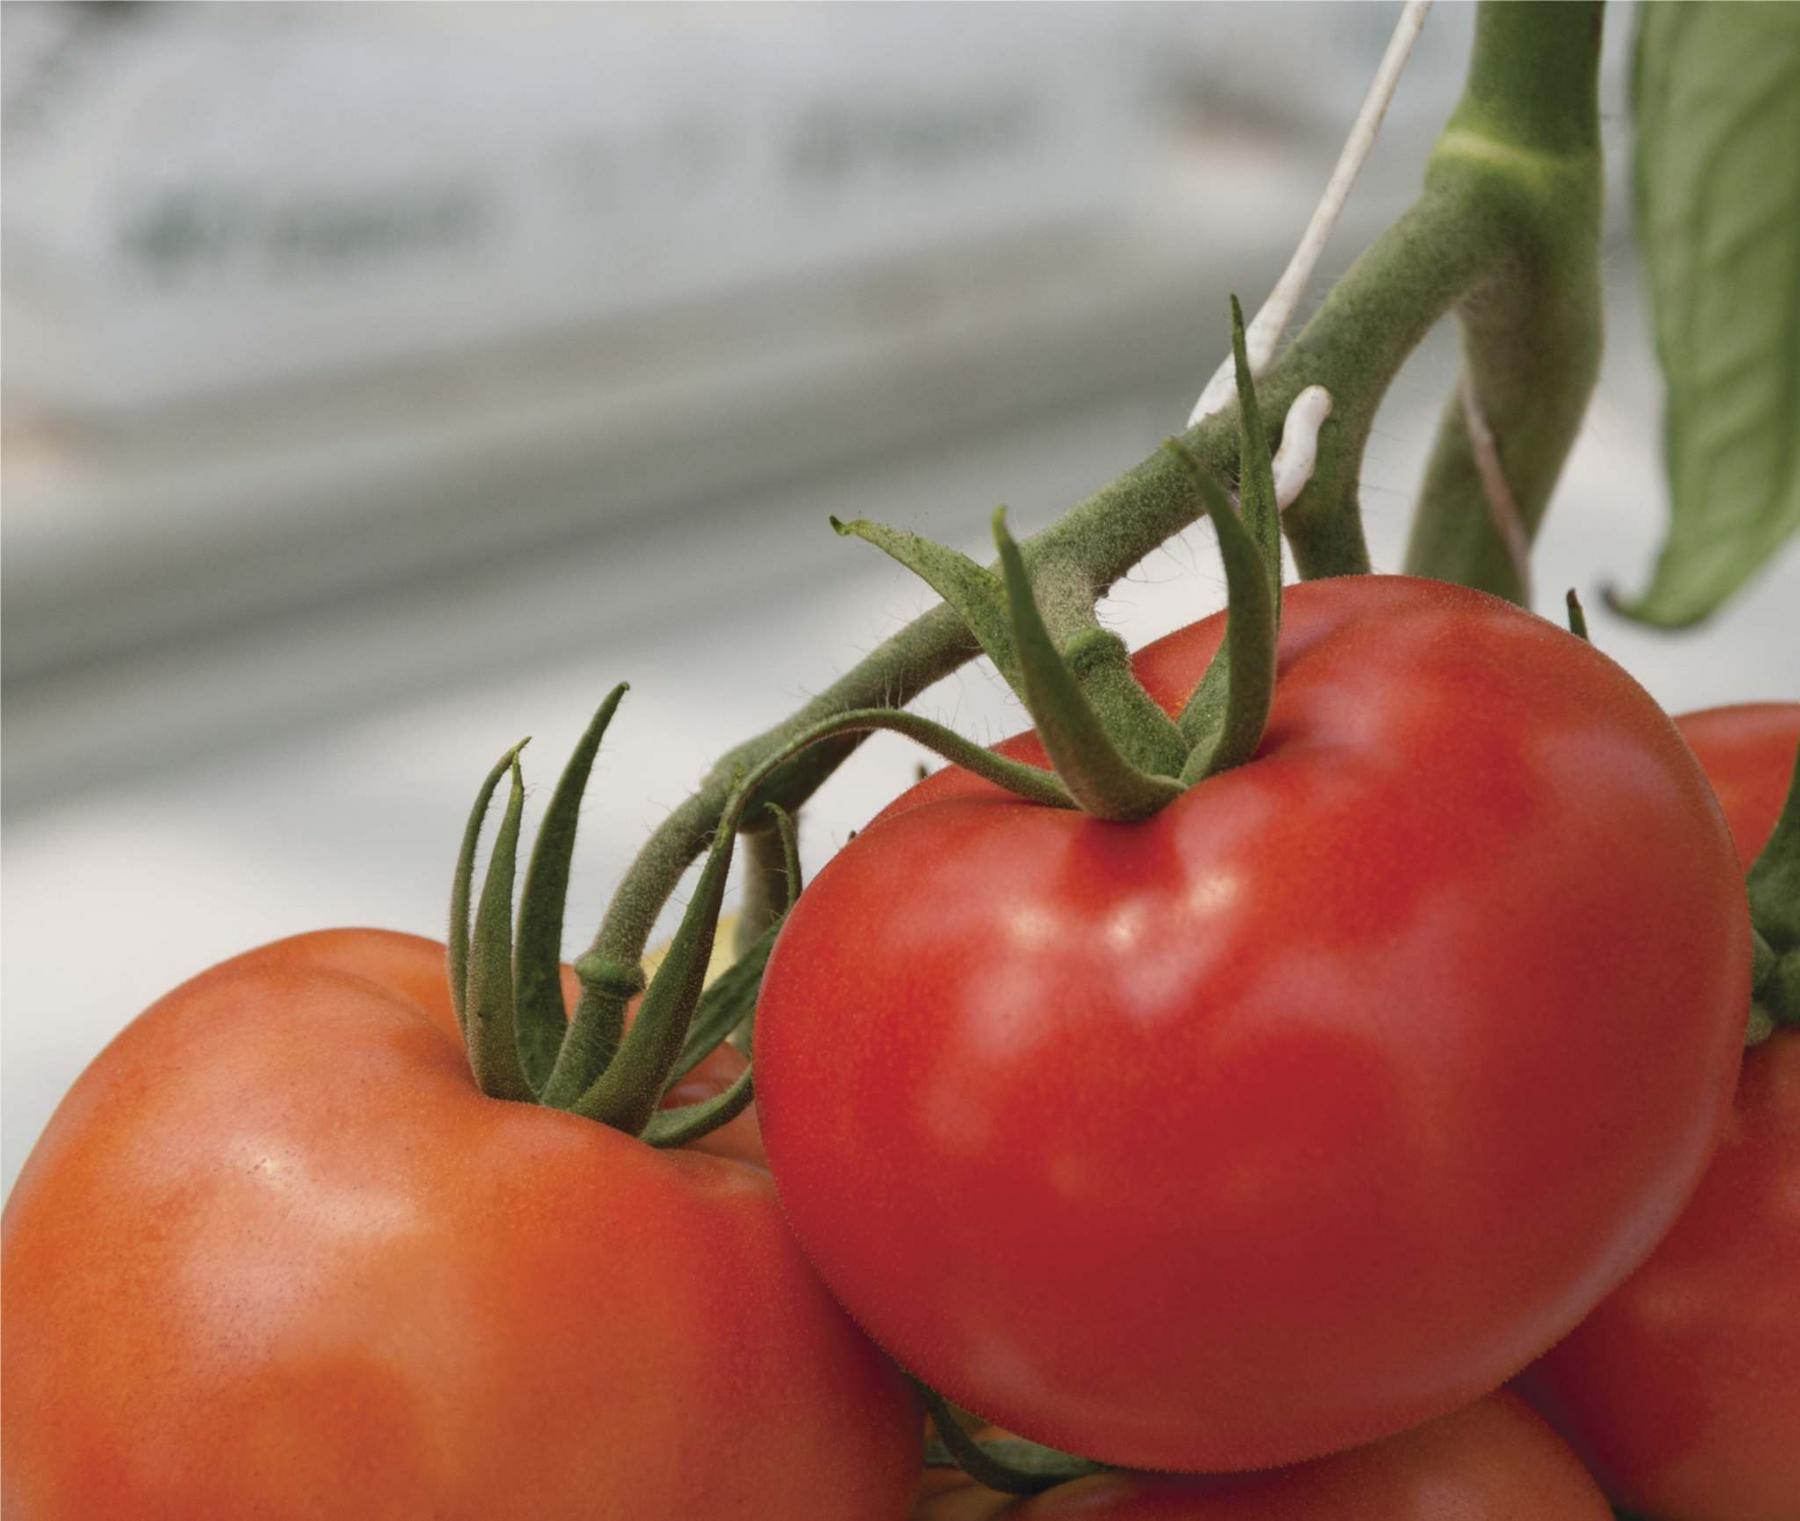 grow your own fruits and veggies